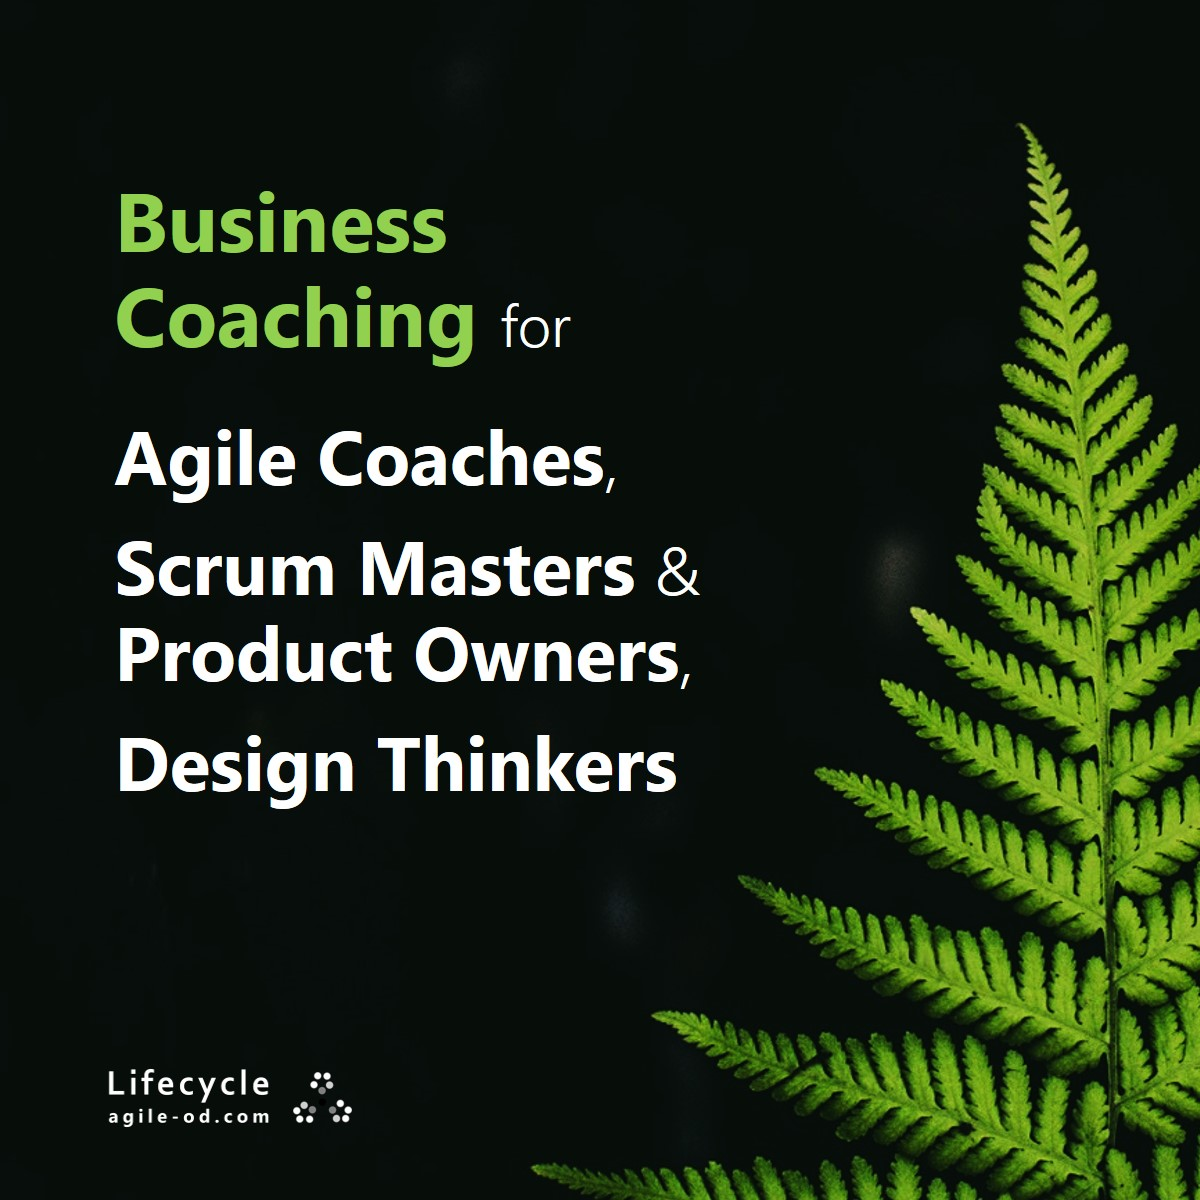 Business Coaching for Agile Coaches & Design Thinkers - agile-od.com